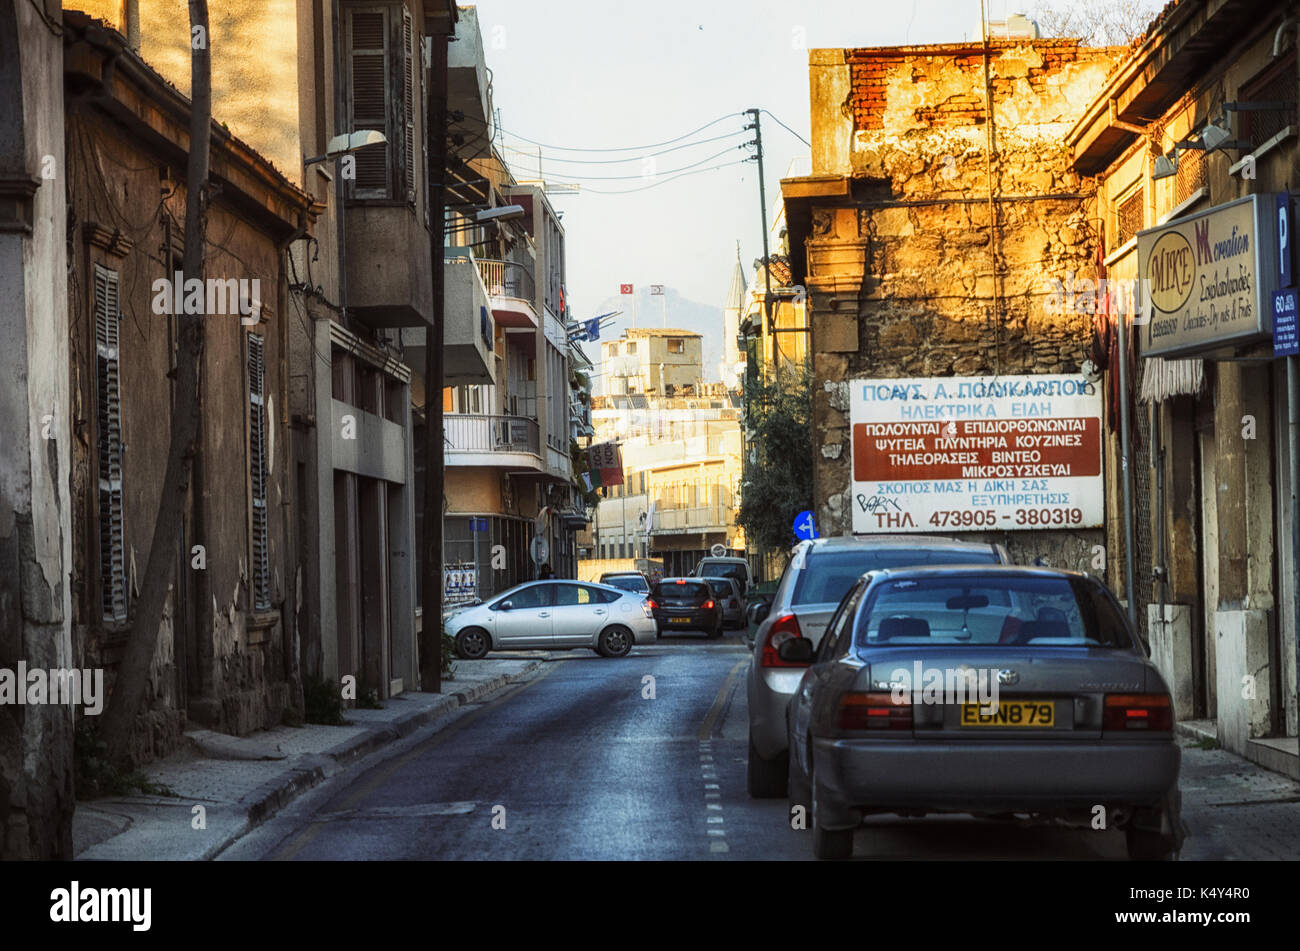 Nicosia, Cyprus on March 21, 2017: United Nations buffer zone (Green line) in Cyprus in Nicosia. - Stock Image